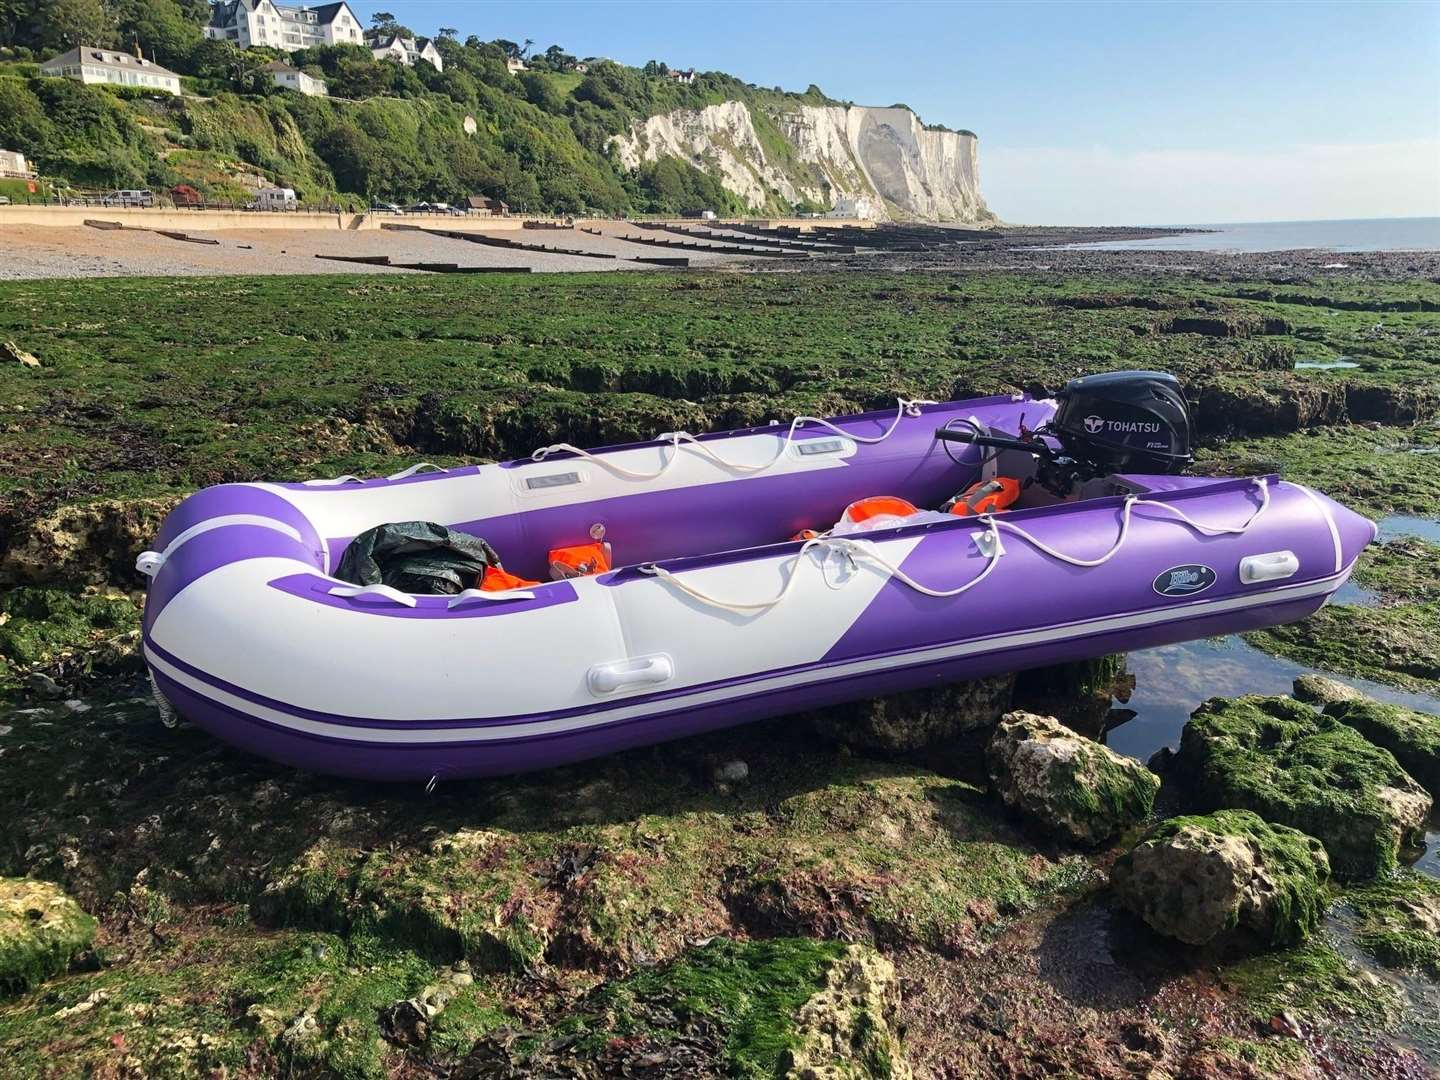 This abandoned dinghy was found on Friday morning at St Margaret's Bay